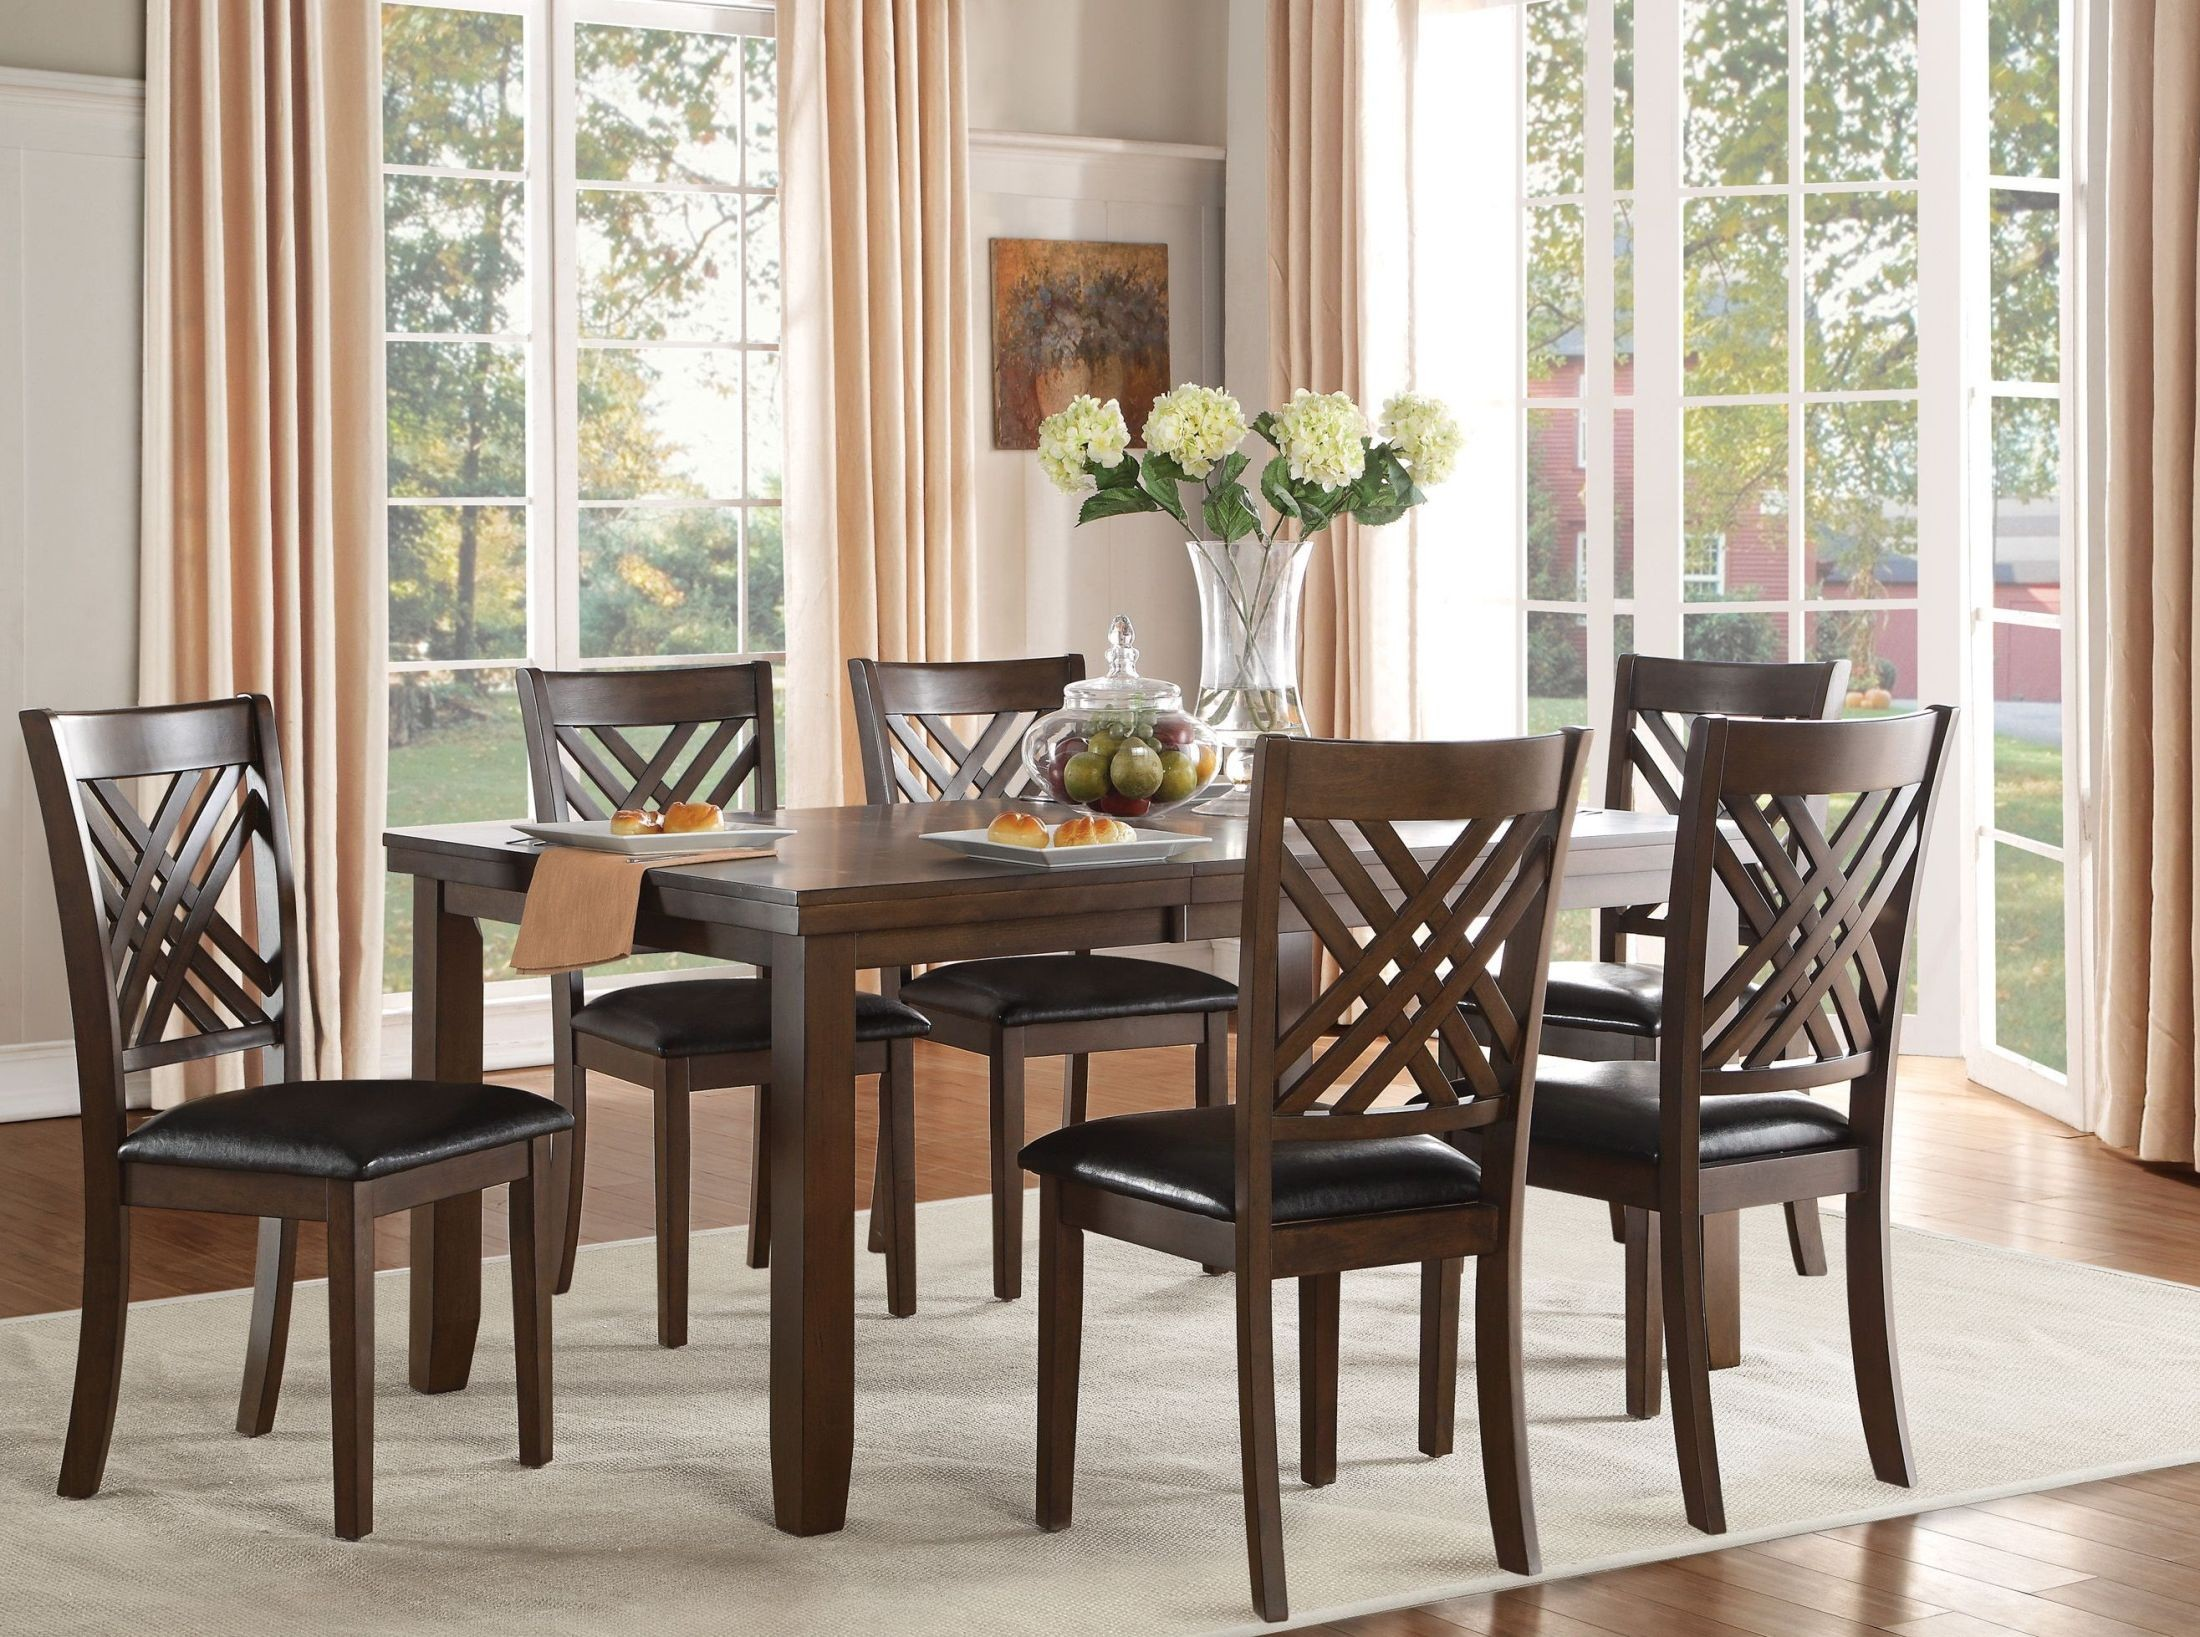 Sandia Black Rectangular Extendable Dining Room Set 5467 66 Homelegance